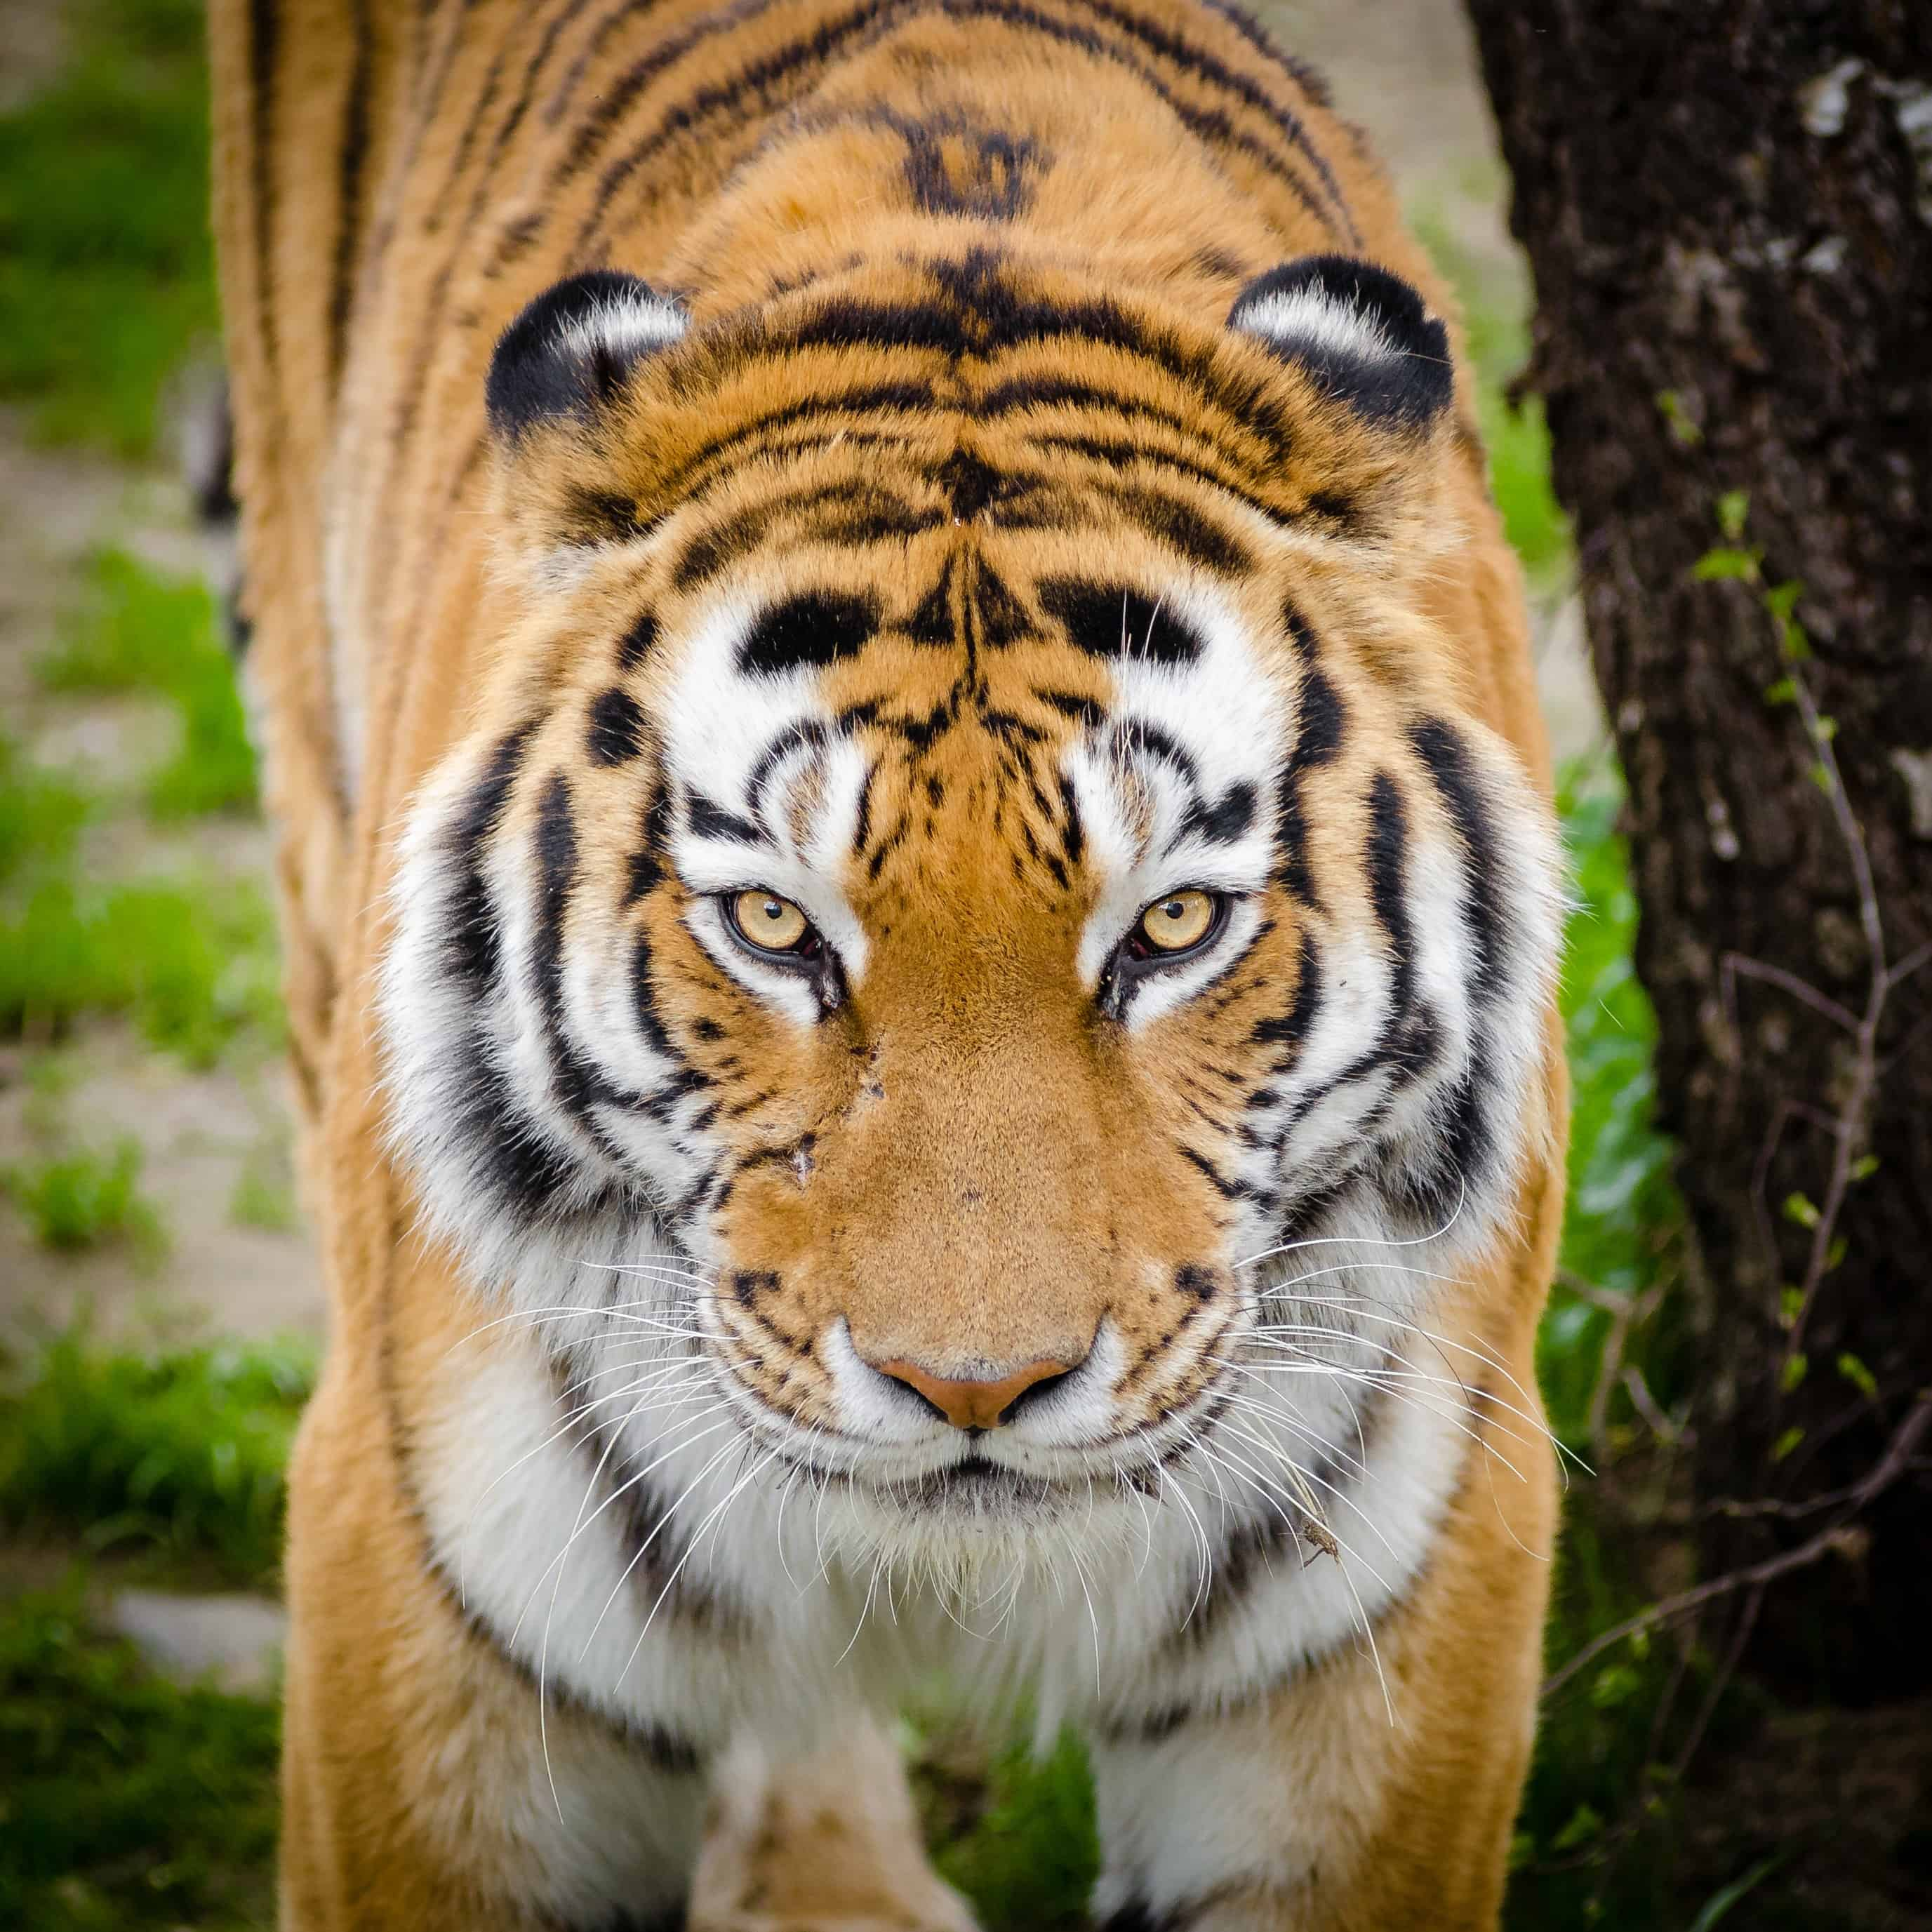 Which Tiger is known as Amur Tiger?